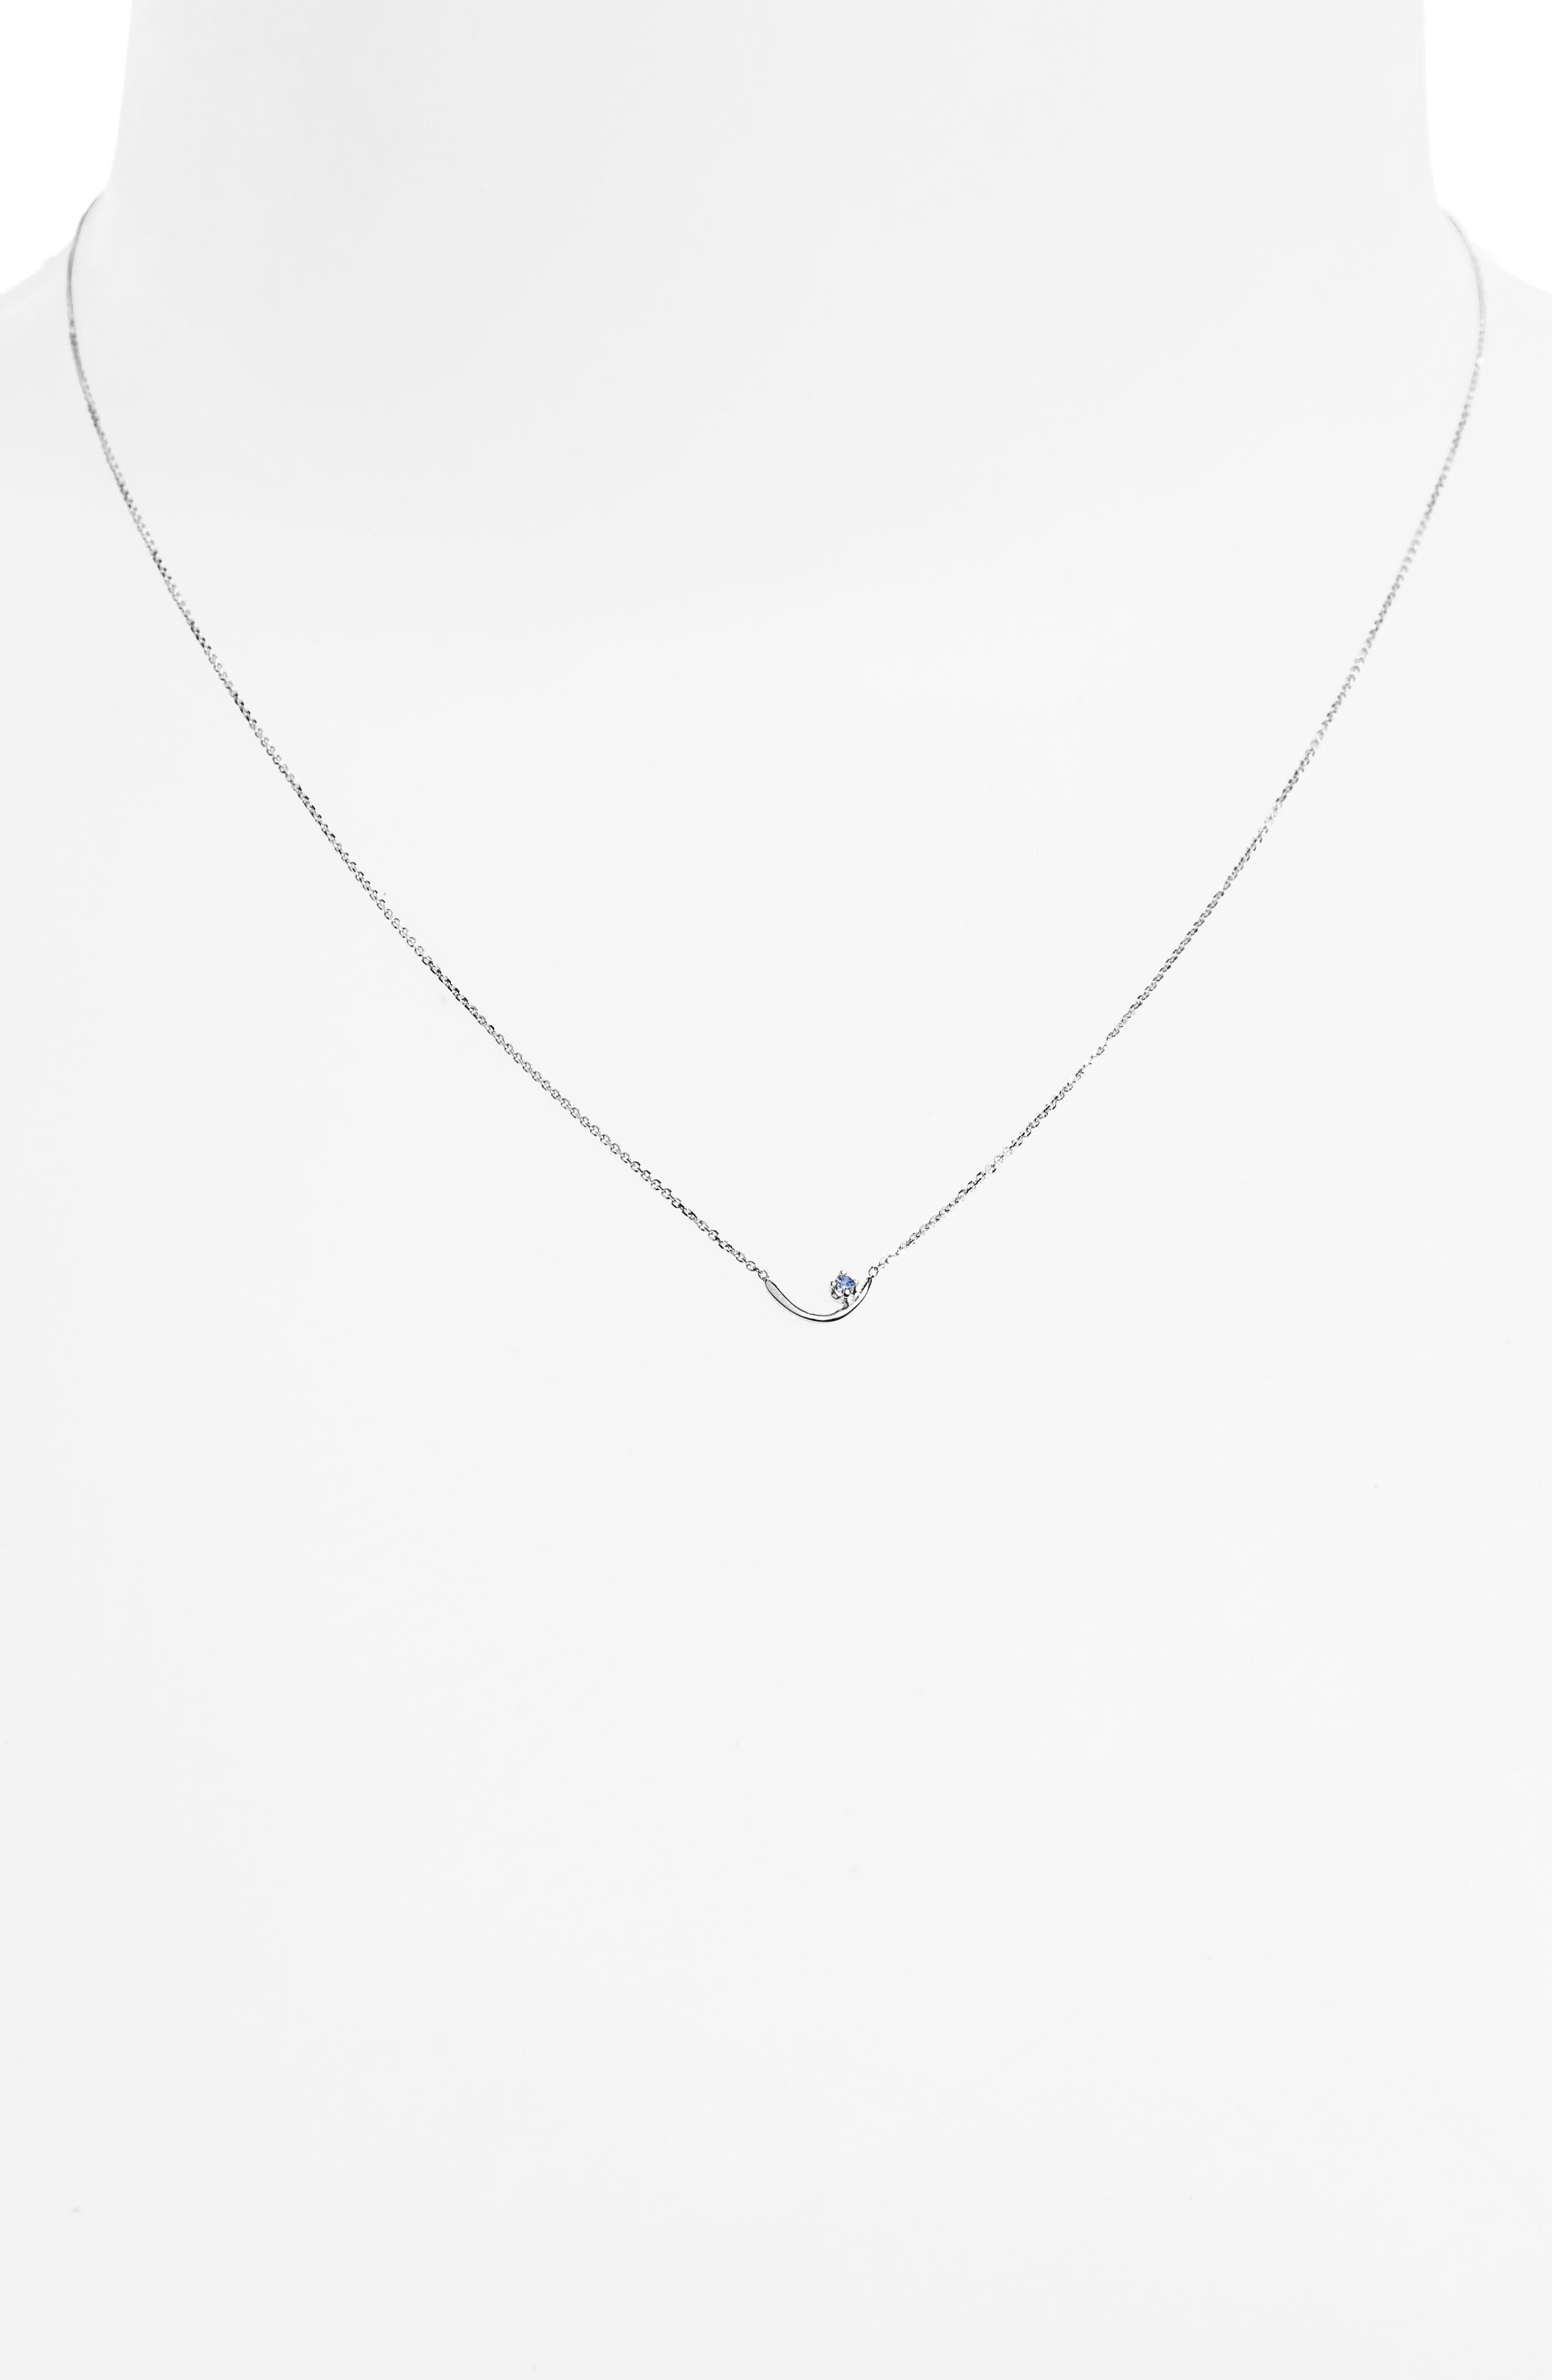 Arc Lineage Necklace,                             Alternate thumbnail 2, color,                             STERLING SILVER/LIGHT SAPPHIRE